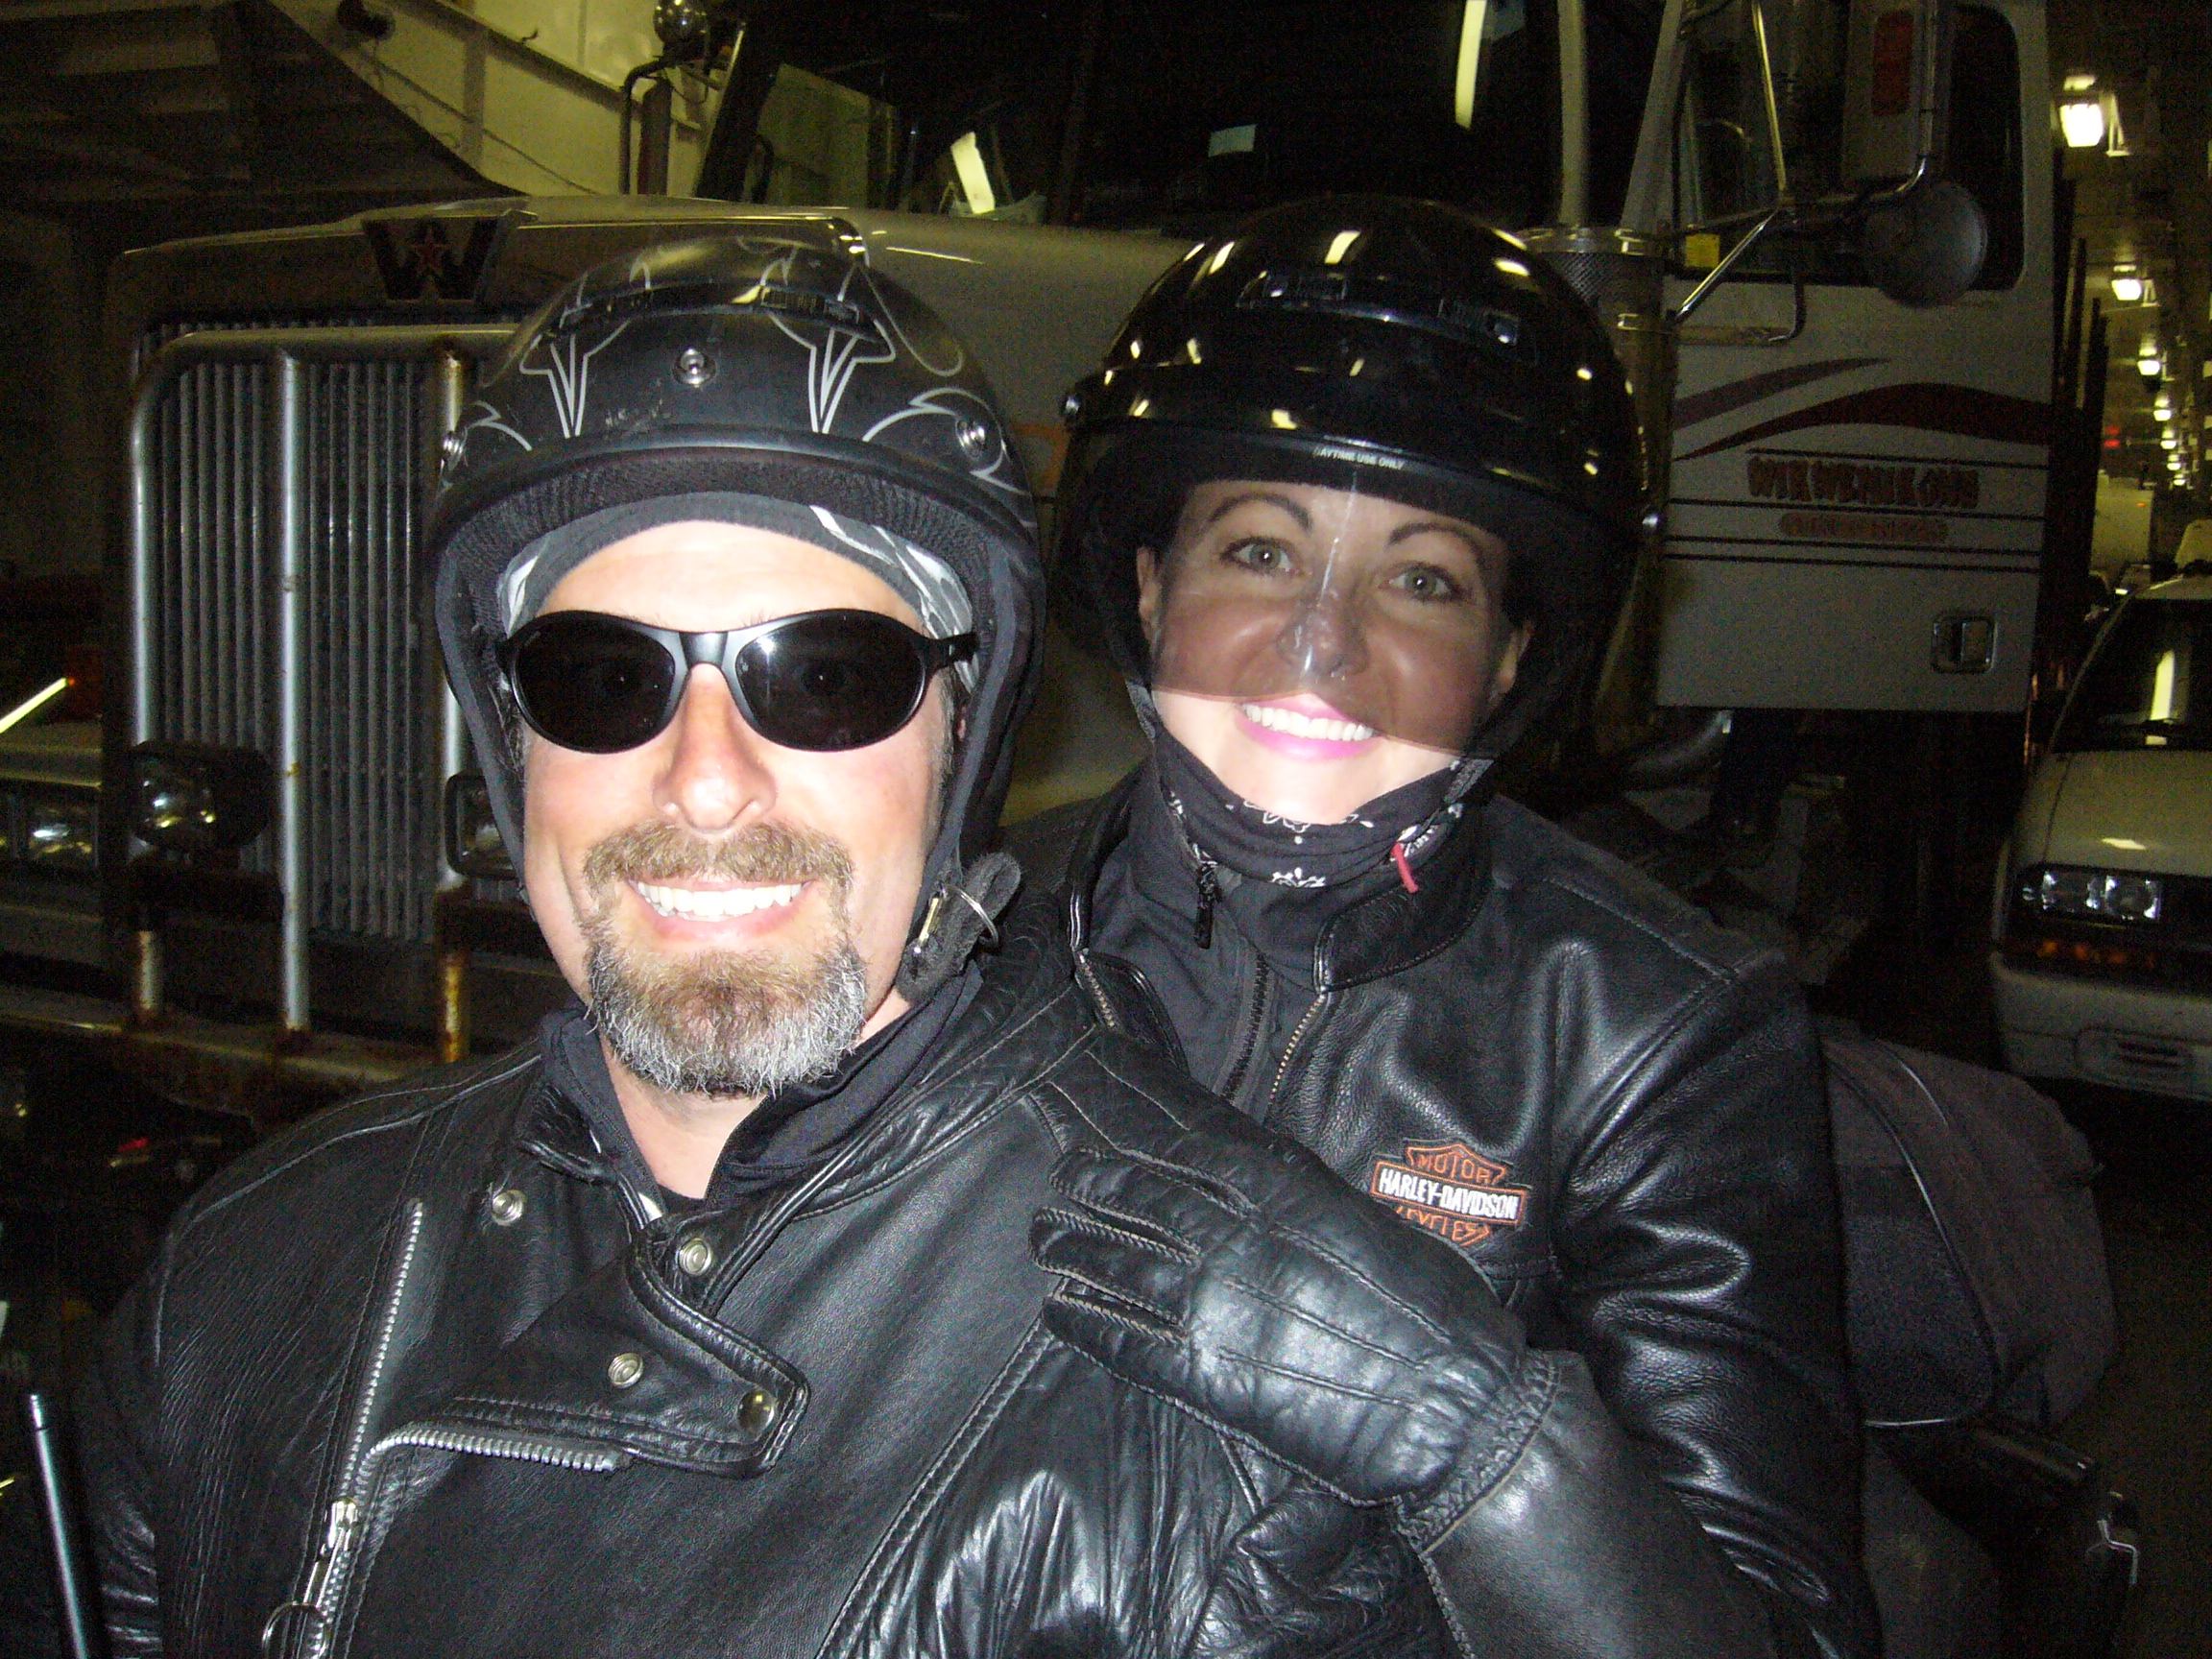 couple on a motorcycle smiling